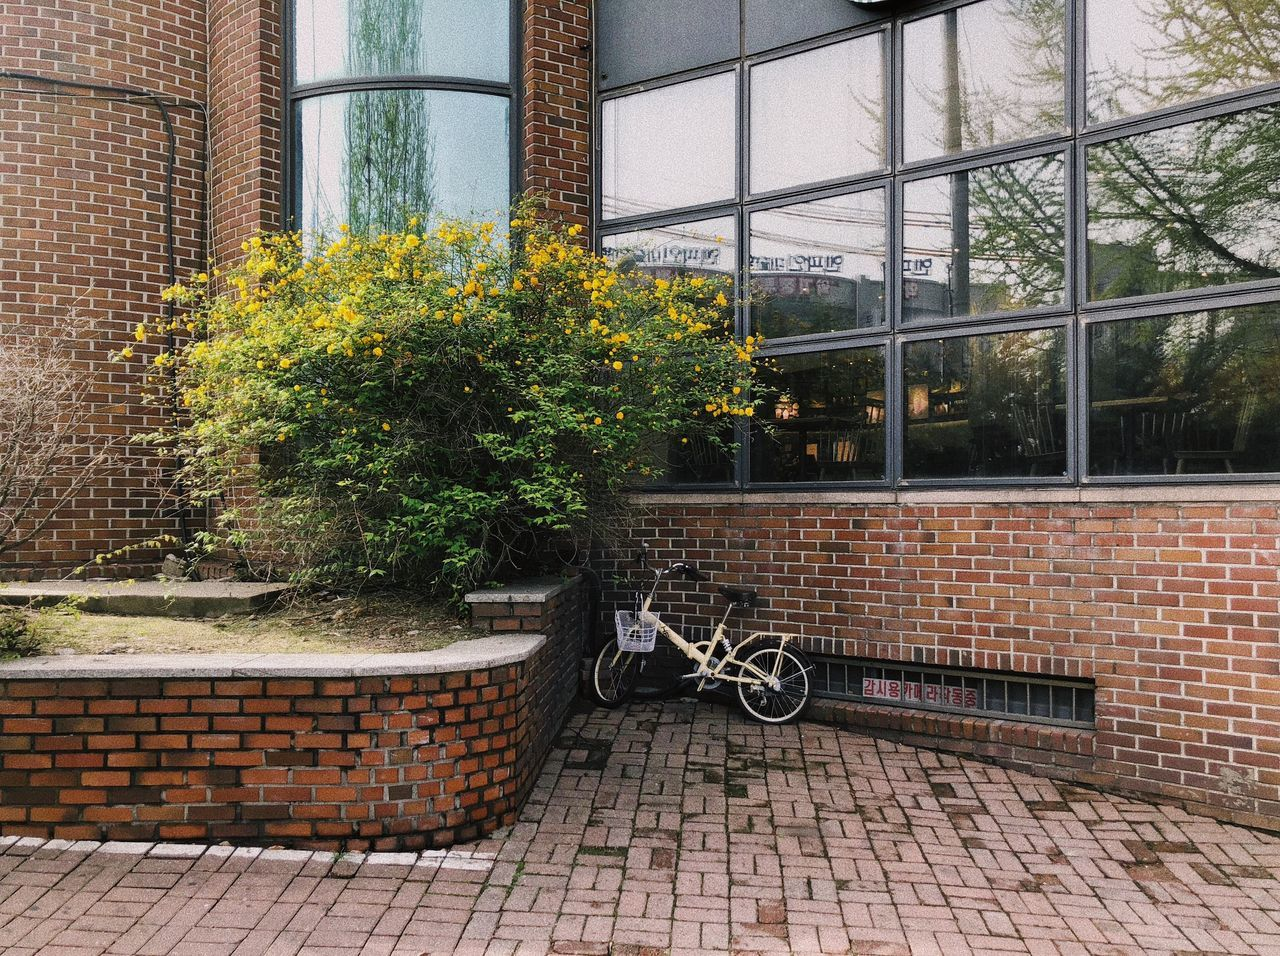 architecture, building exterior, built structure, plant, bicycle, brick wall, wall, brick, transportation, mode of transportation, window, land vehicle, day, no people, building, tree, stationary, city, outdoors, wall - building feature